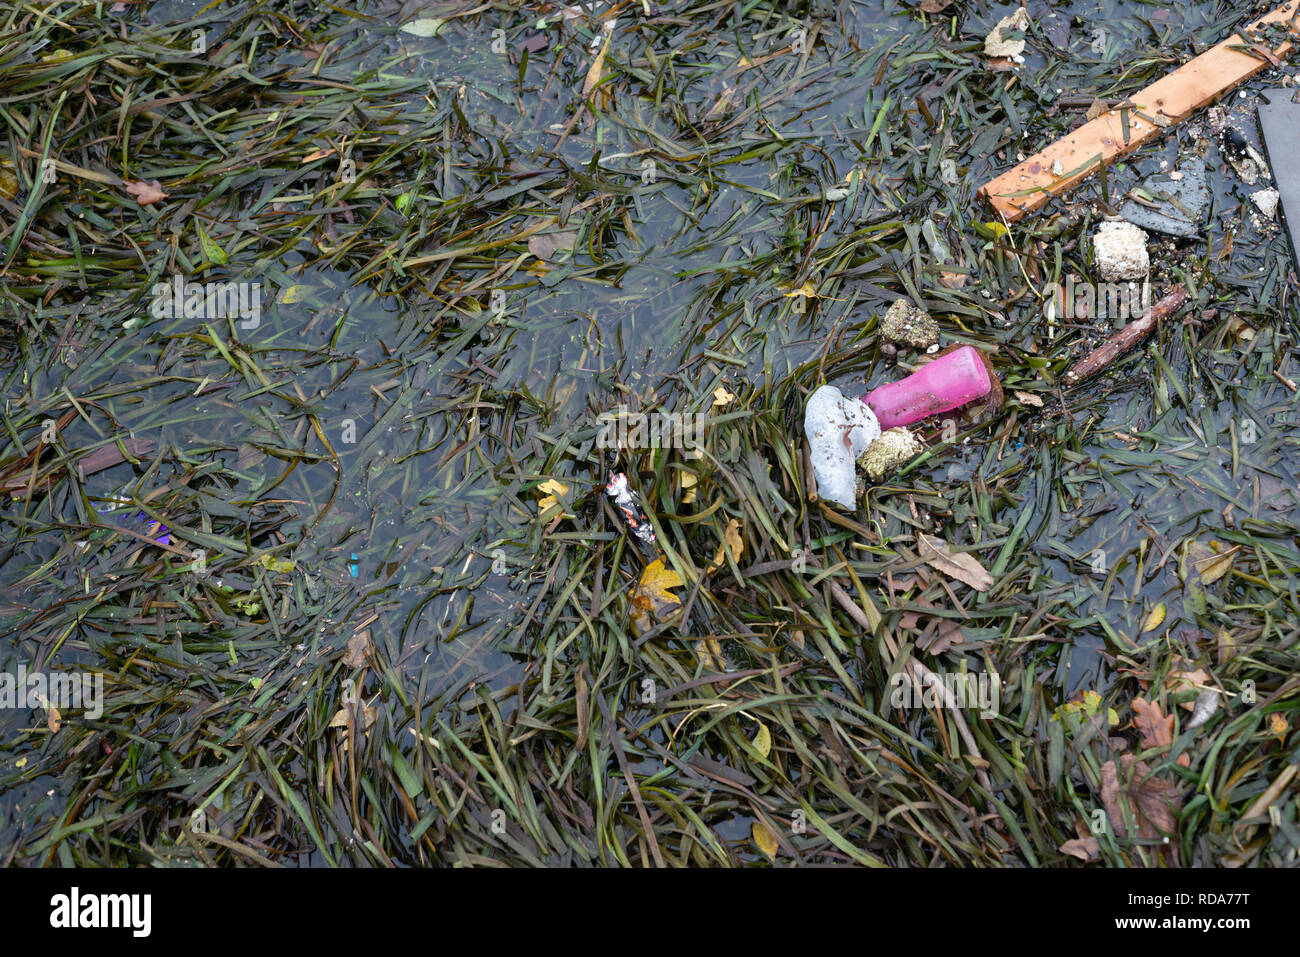 Discarded rubbish found along the River Lea in London, UK - Stock Image